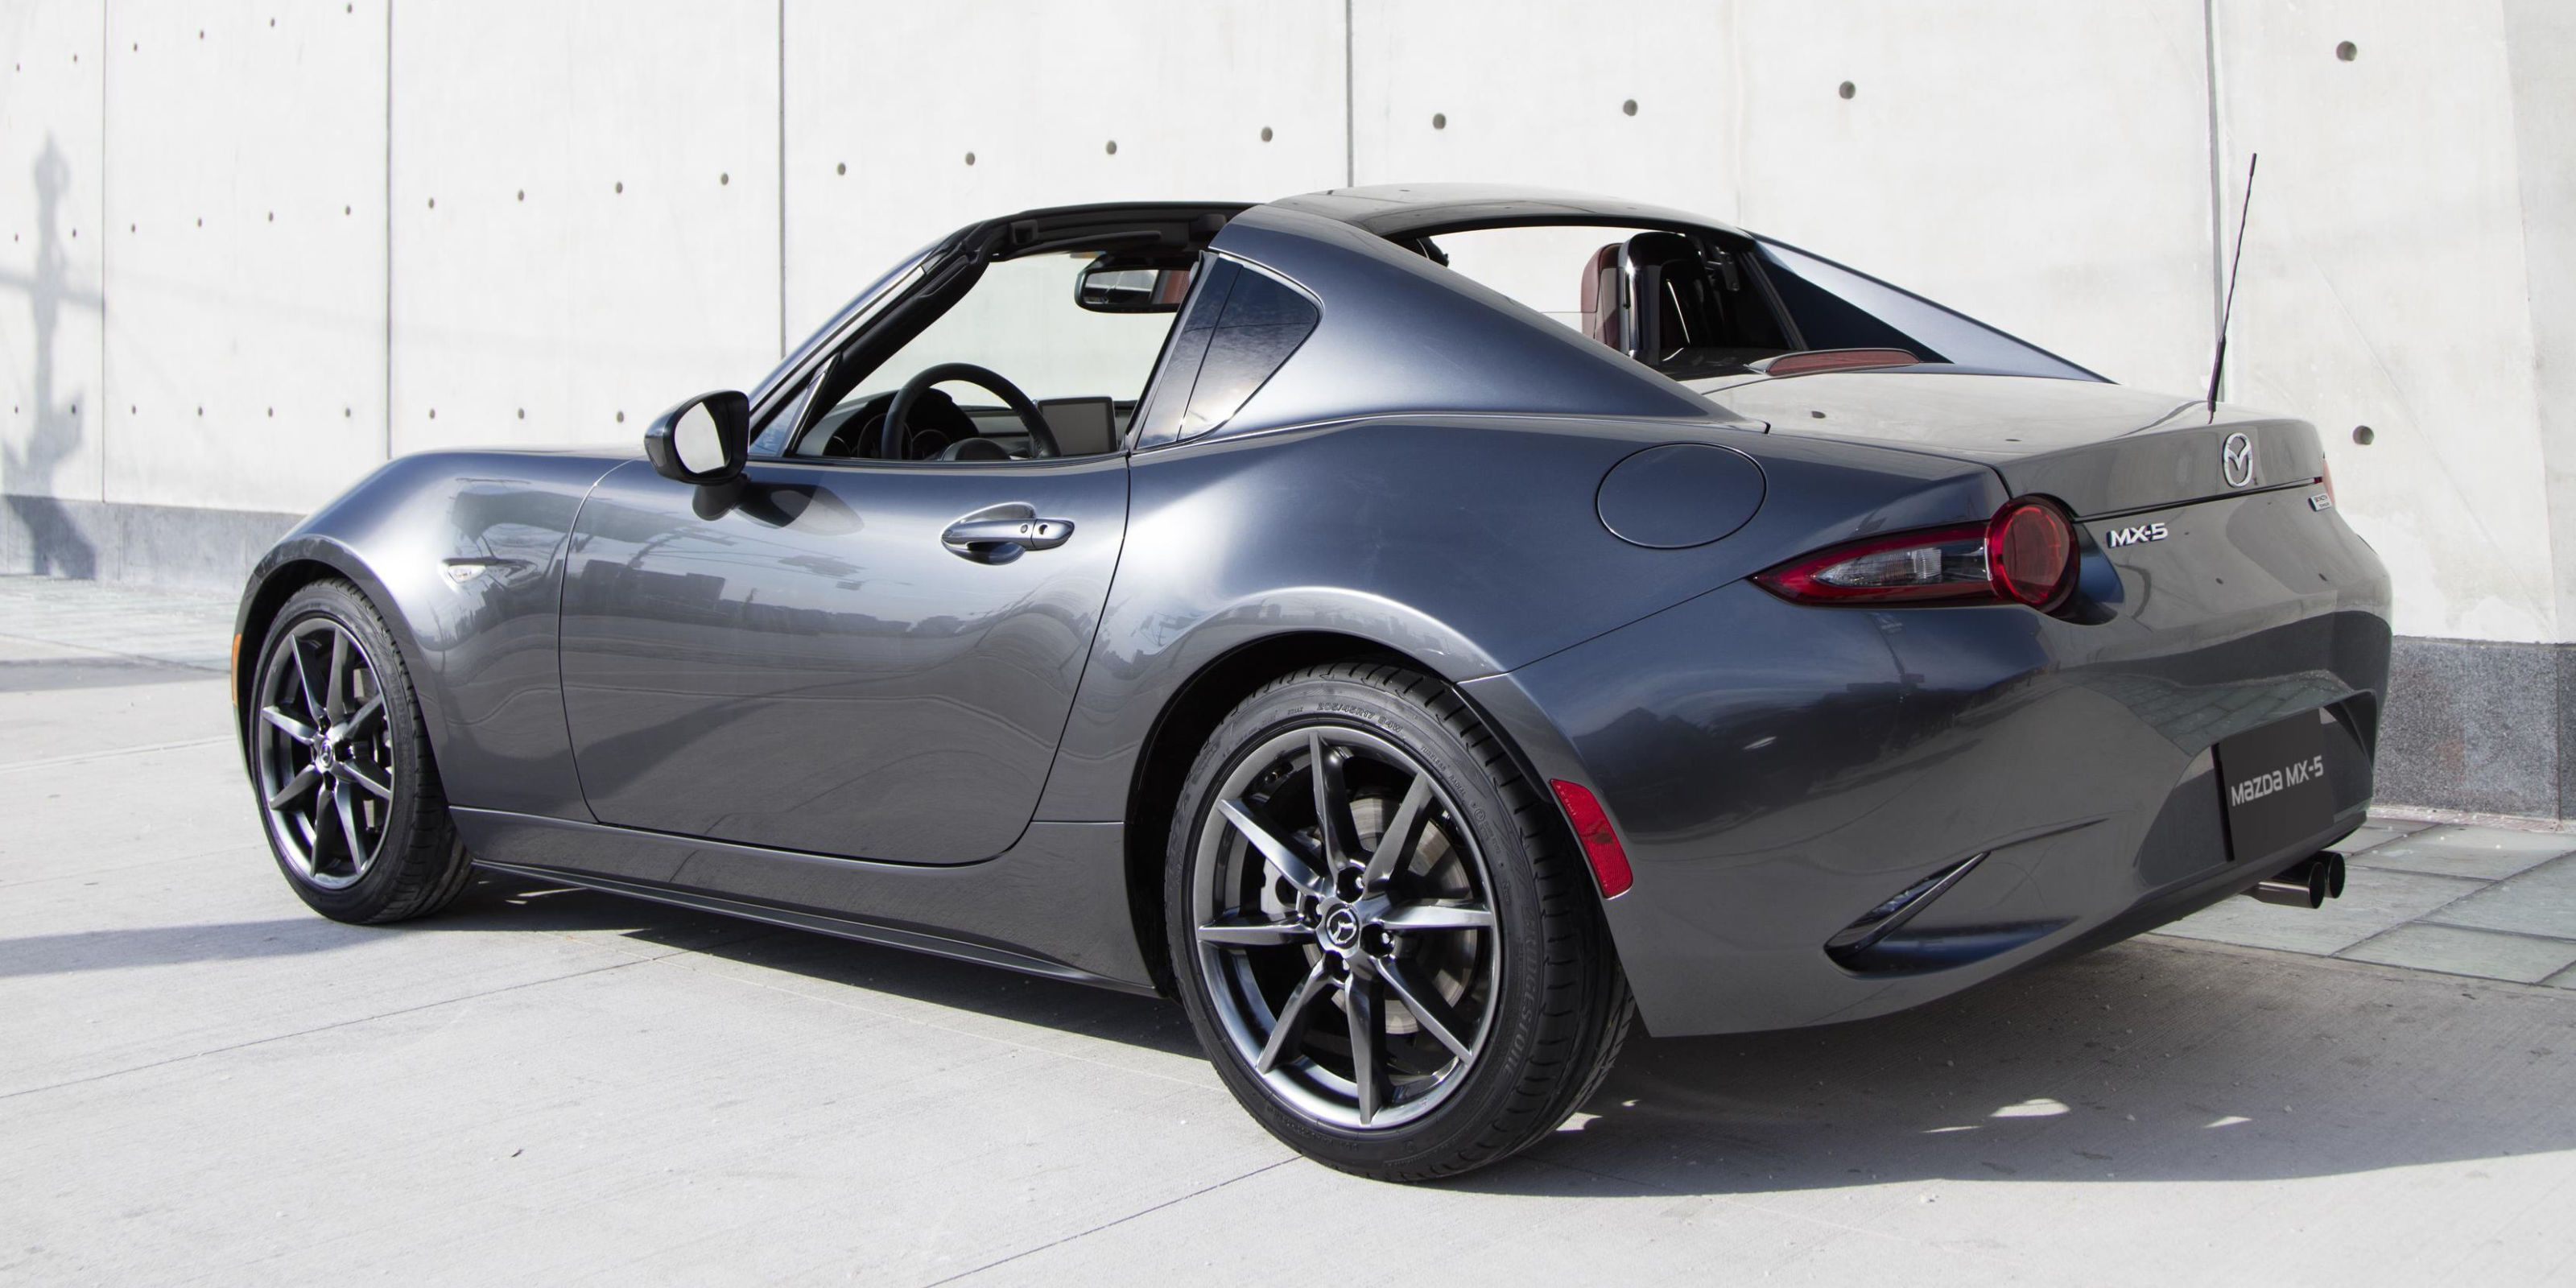 Our Man Sam Smith Spent This Past Weekend At Miatas At Mazda Raceway, A  Two Day Celebration Of The Beloved Roadster At Mazda Raceway Laguna Seca.